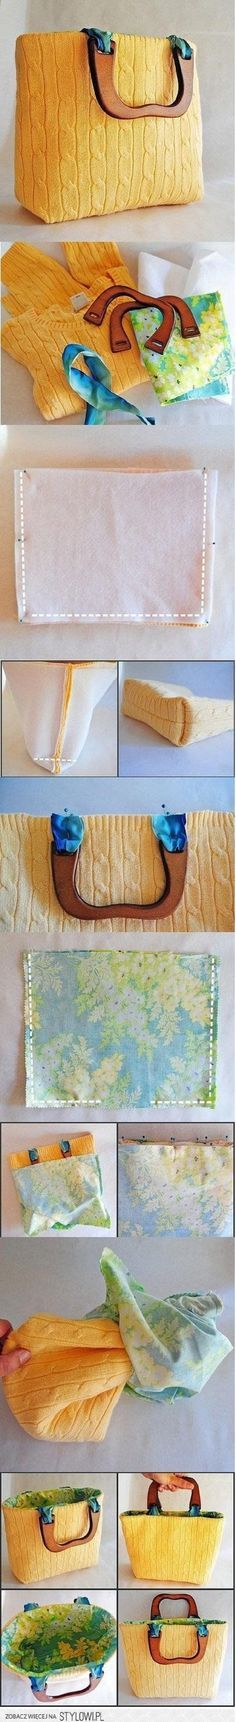 The Upcycled Sweater - view more crafts HERE